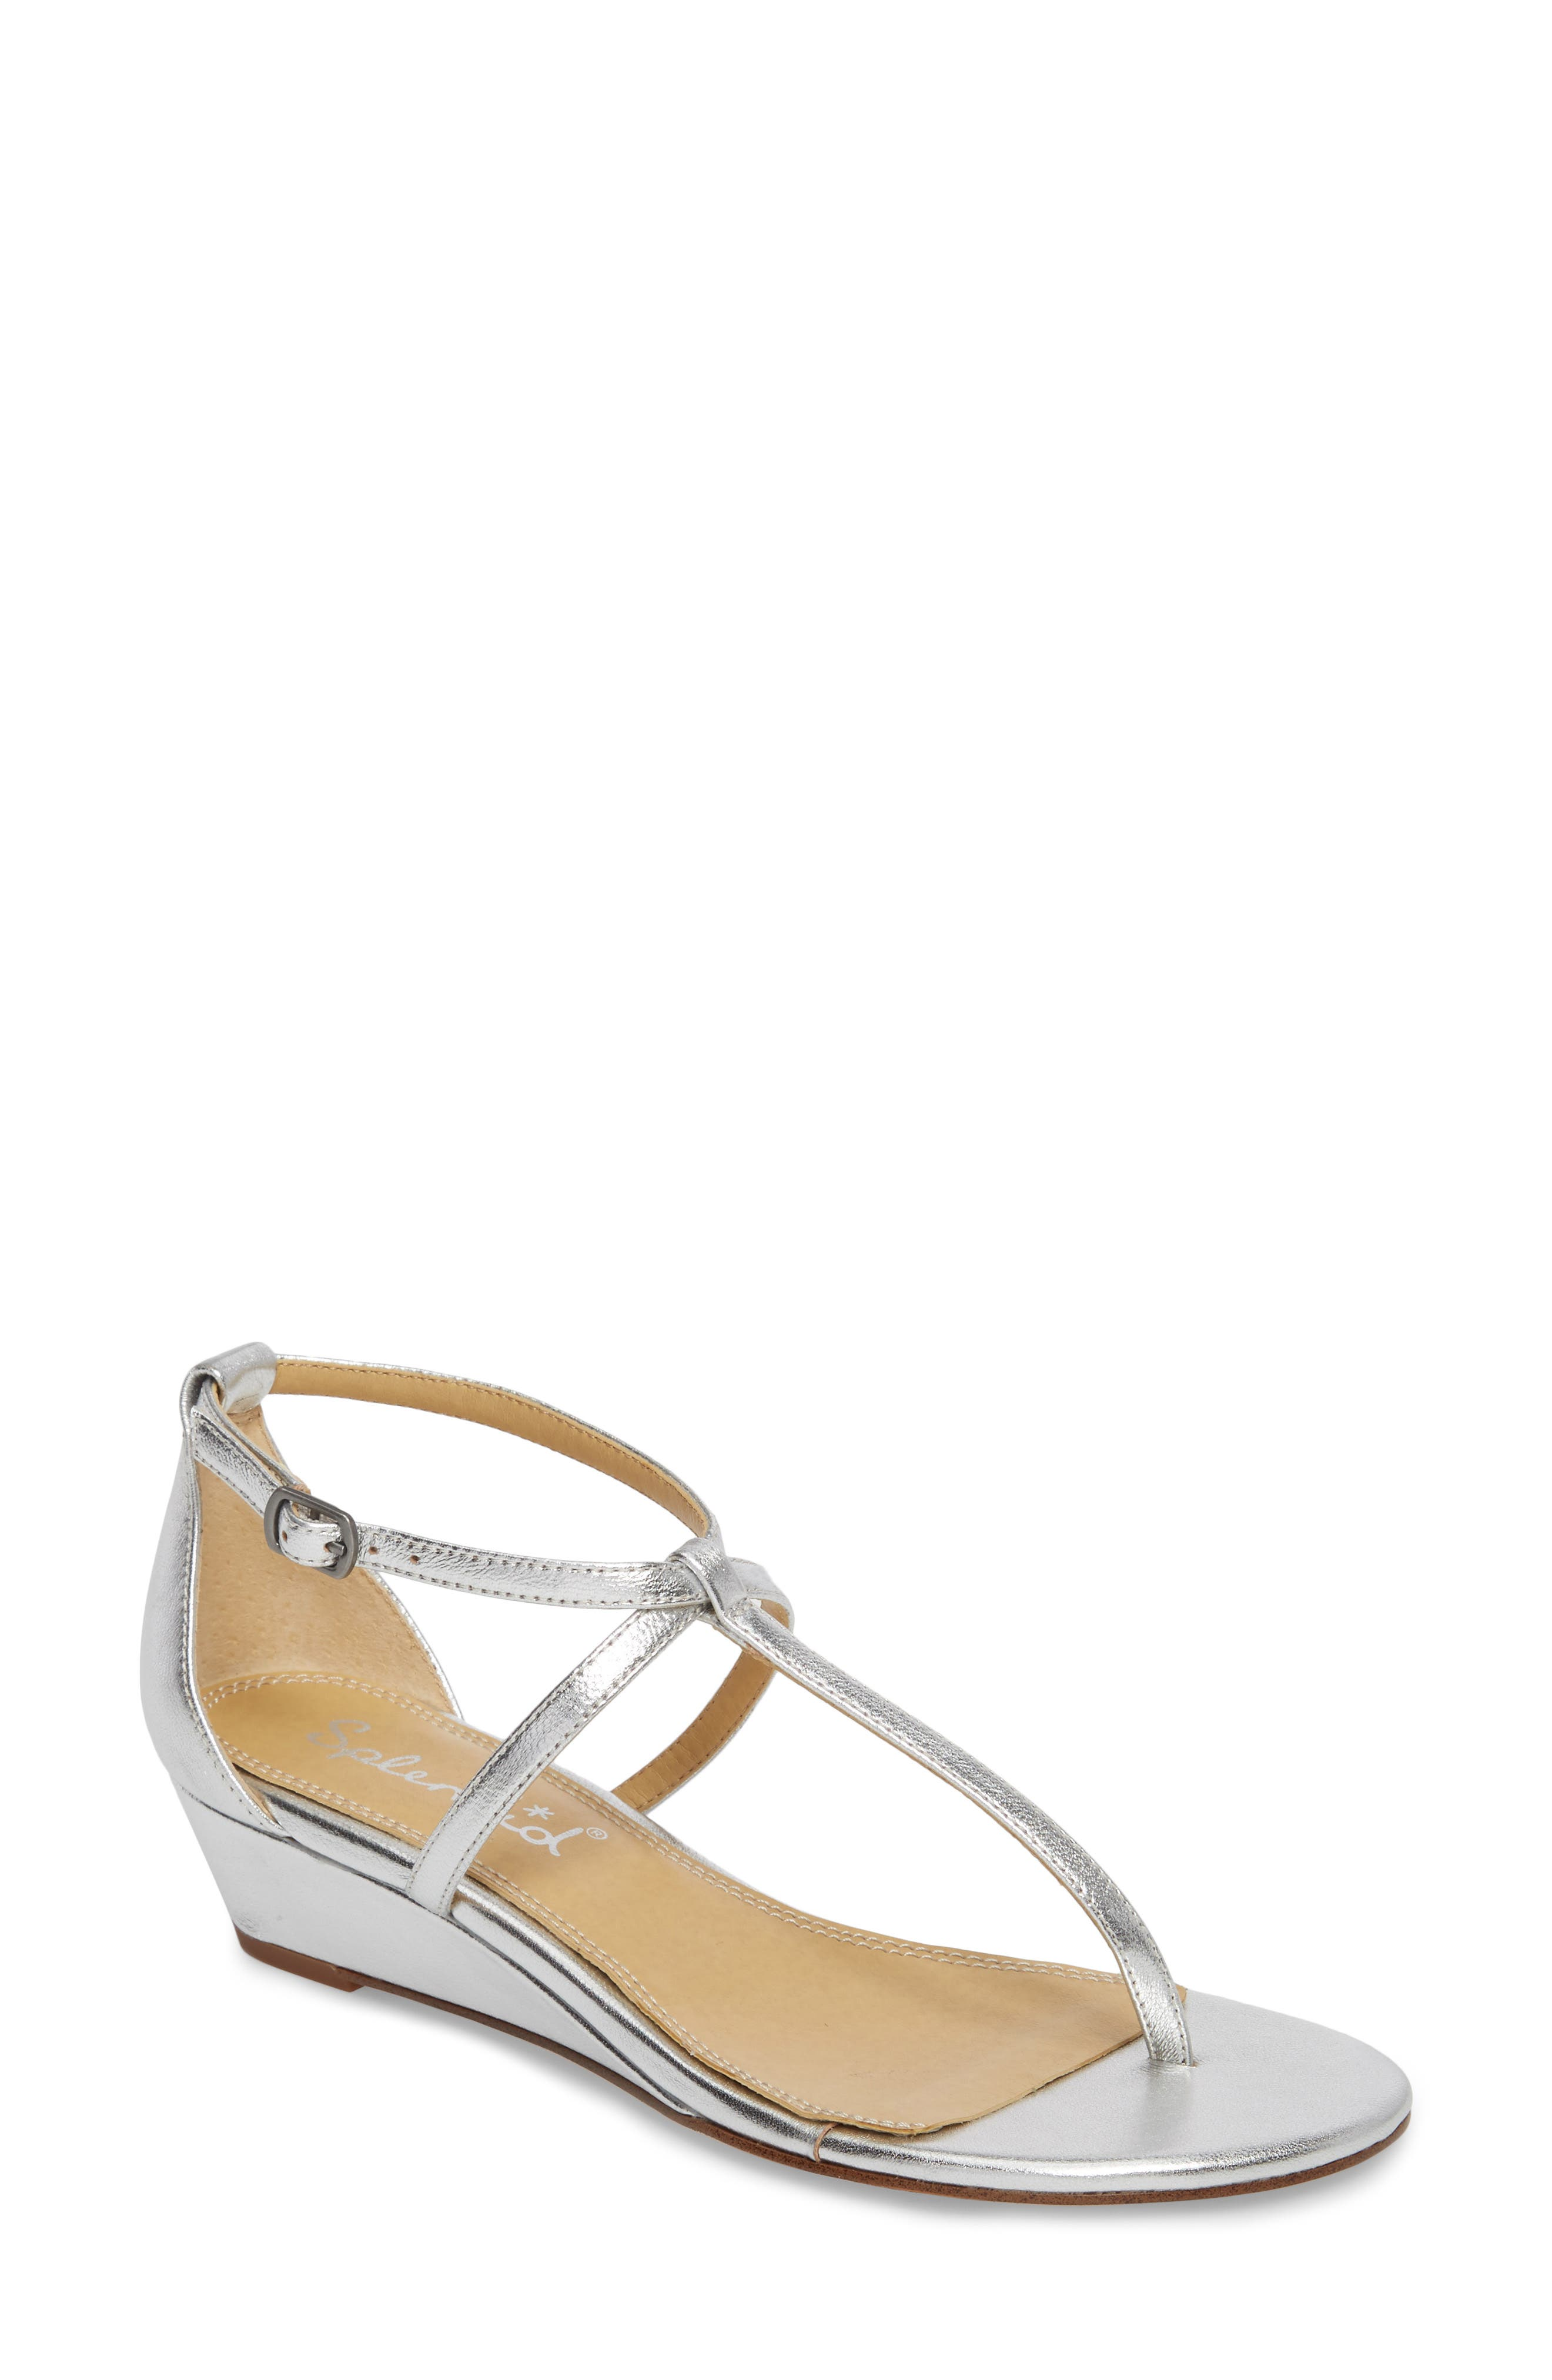 Bryce T-Strap Wedge Sandal,                             Main thumbnail 2, color,